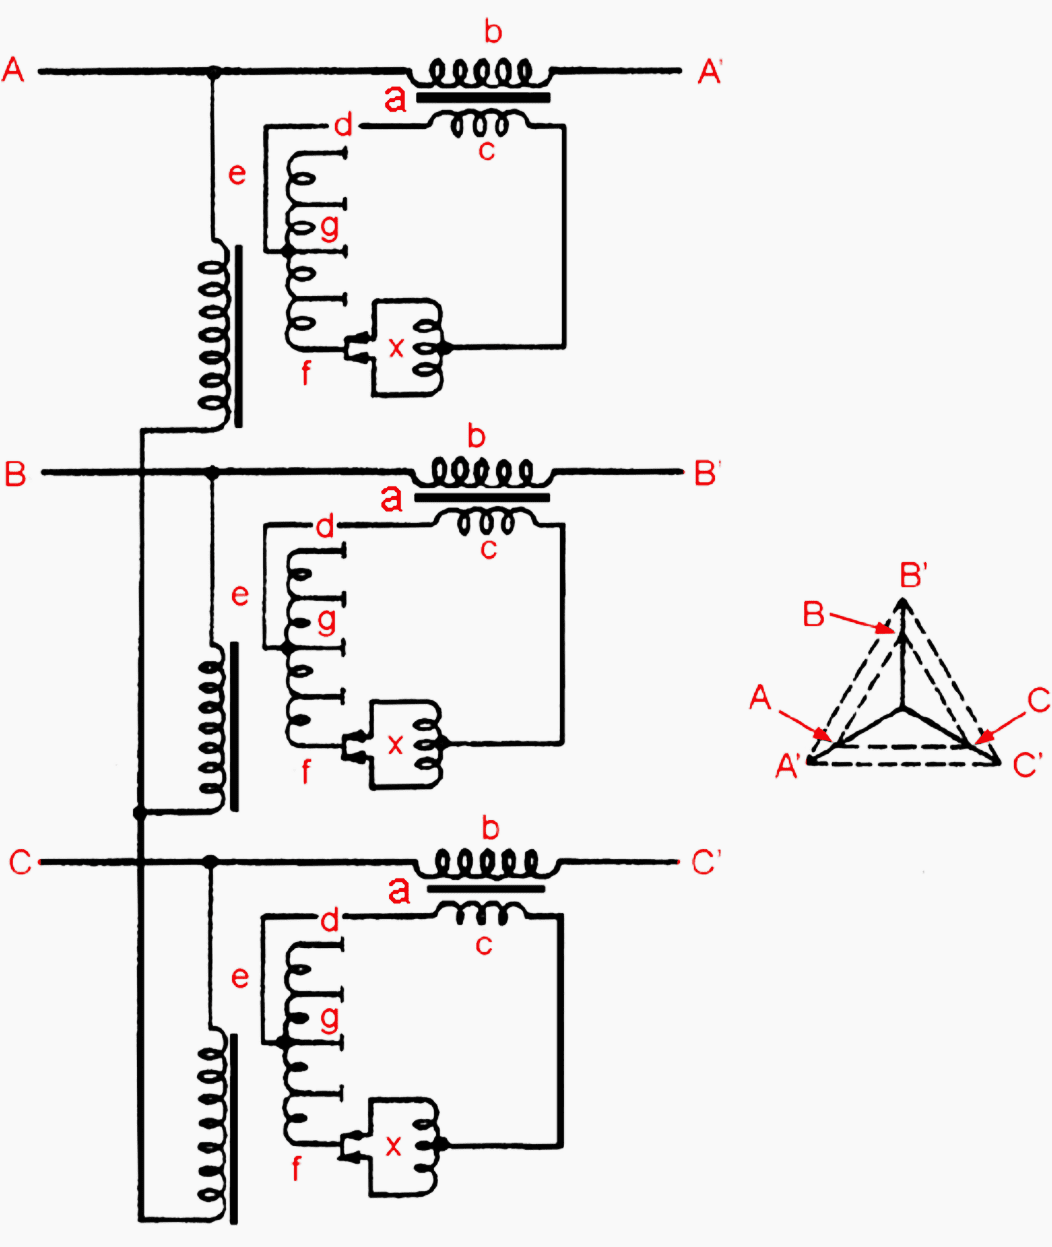 phasor diagram of single phase transformer home theatre wiring voltage regulators used to control the at end